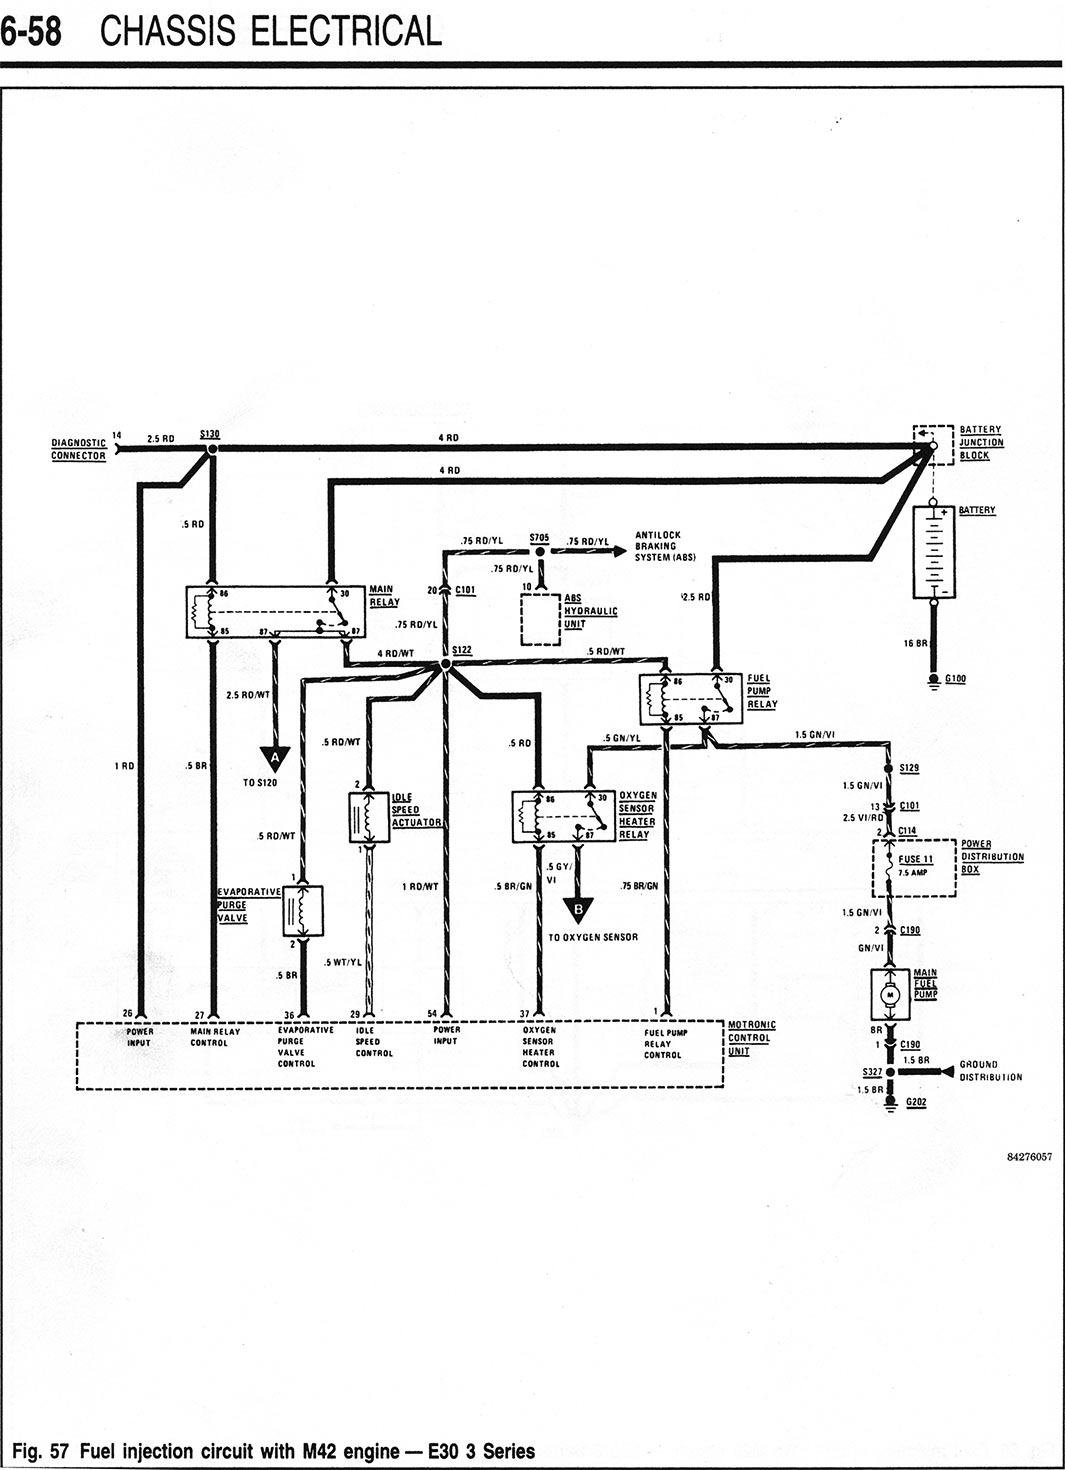 bmw e30 engine wiring diagram example electrical wiring diagram \u2022 e30 wiring-diagram lights bmw m42 wiring diagram wiring diagrams rh boltsoft net bmw e30 325i wiring diagram bmw e30